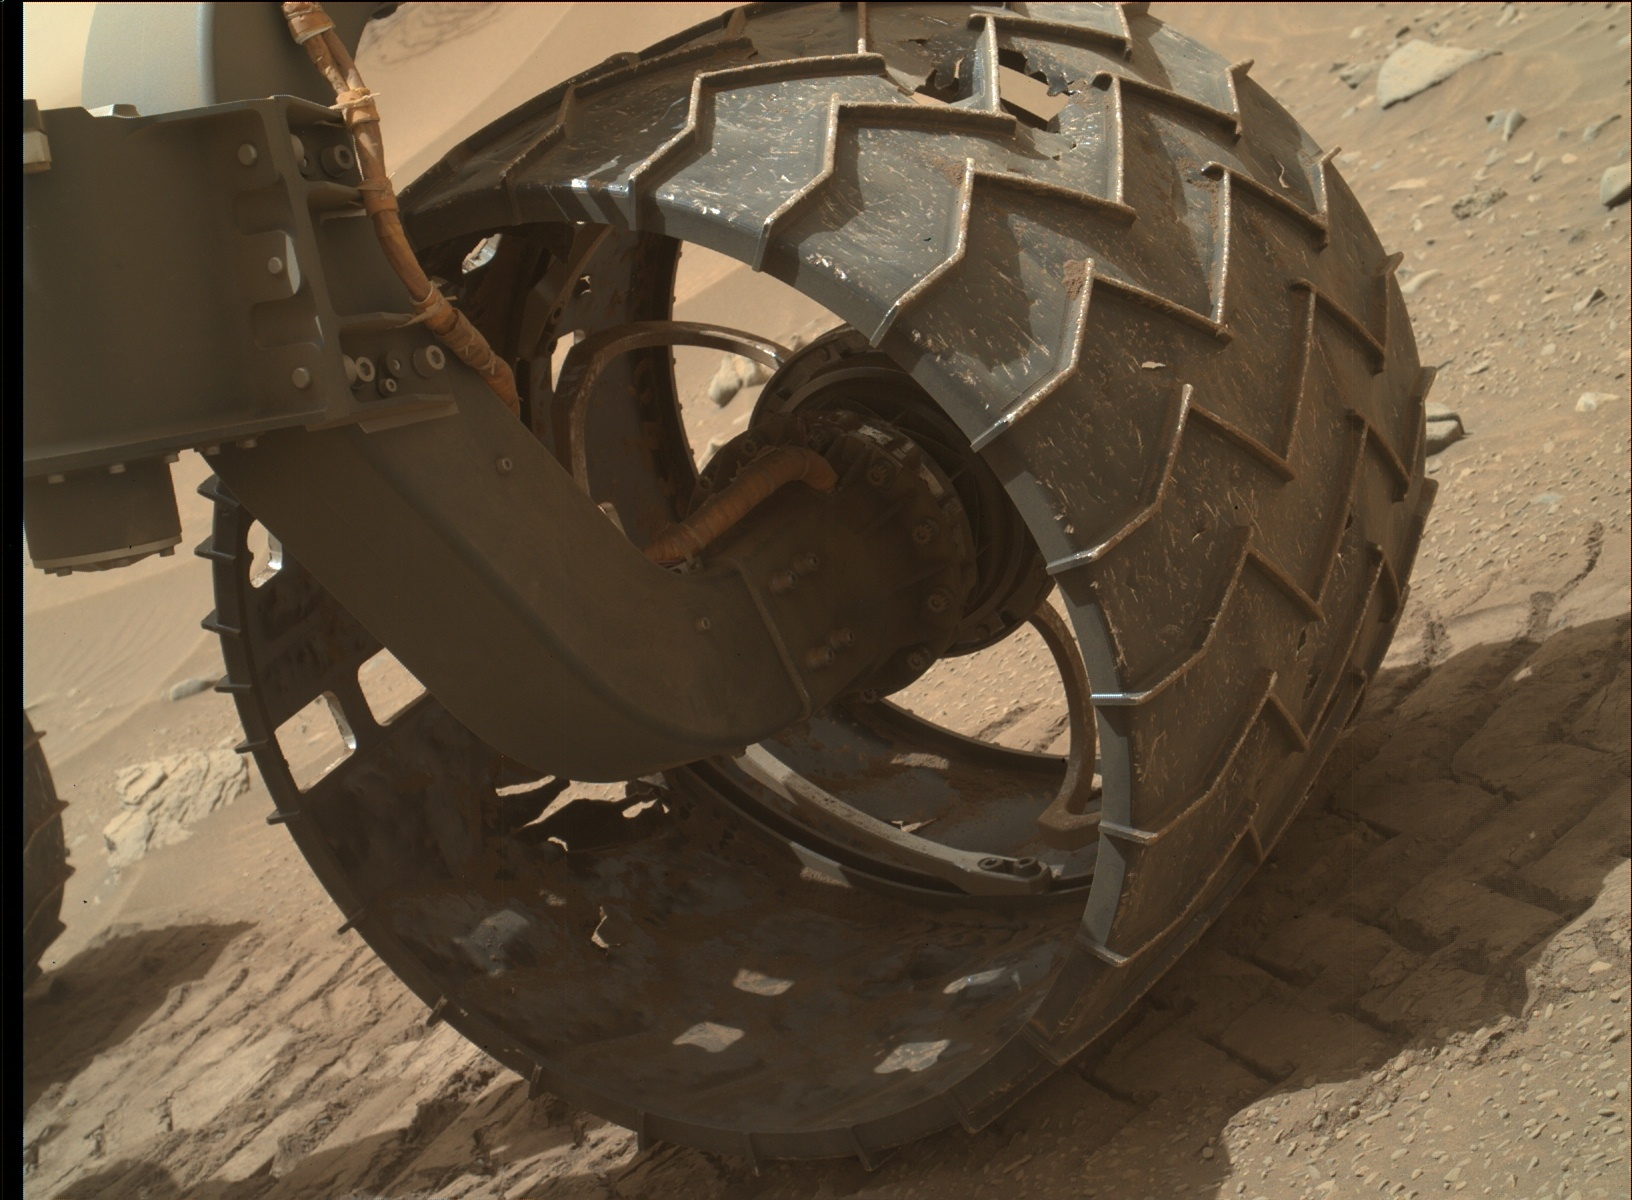 Nasa's Mars rover Curiosity acquired this image using its Mars Hand Lens Imager (MAHLI) on Sol 1046